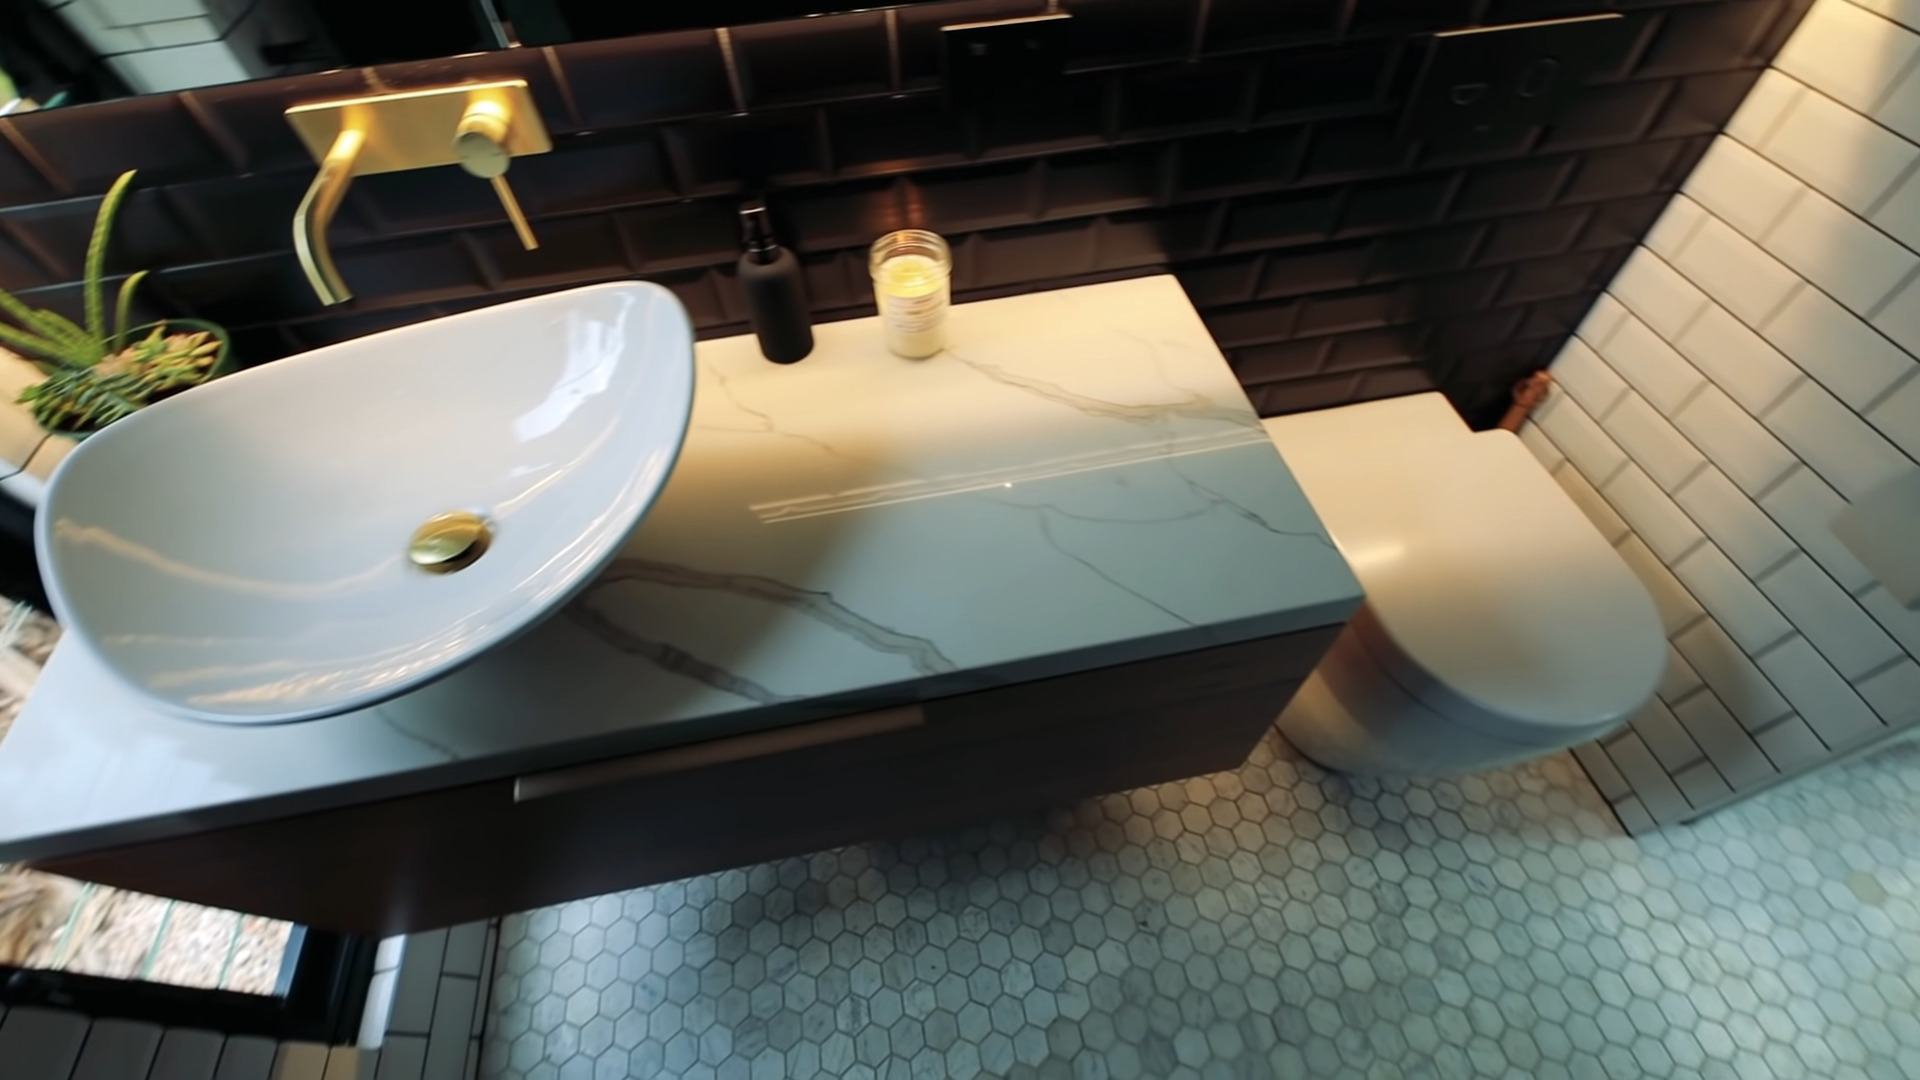 do tiny houses have bathroom view of the marble countertop bowl sink and toilet